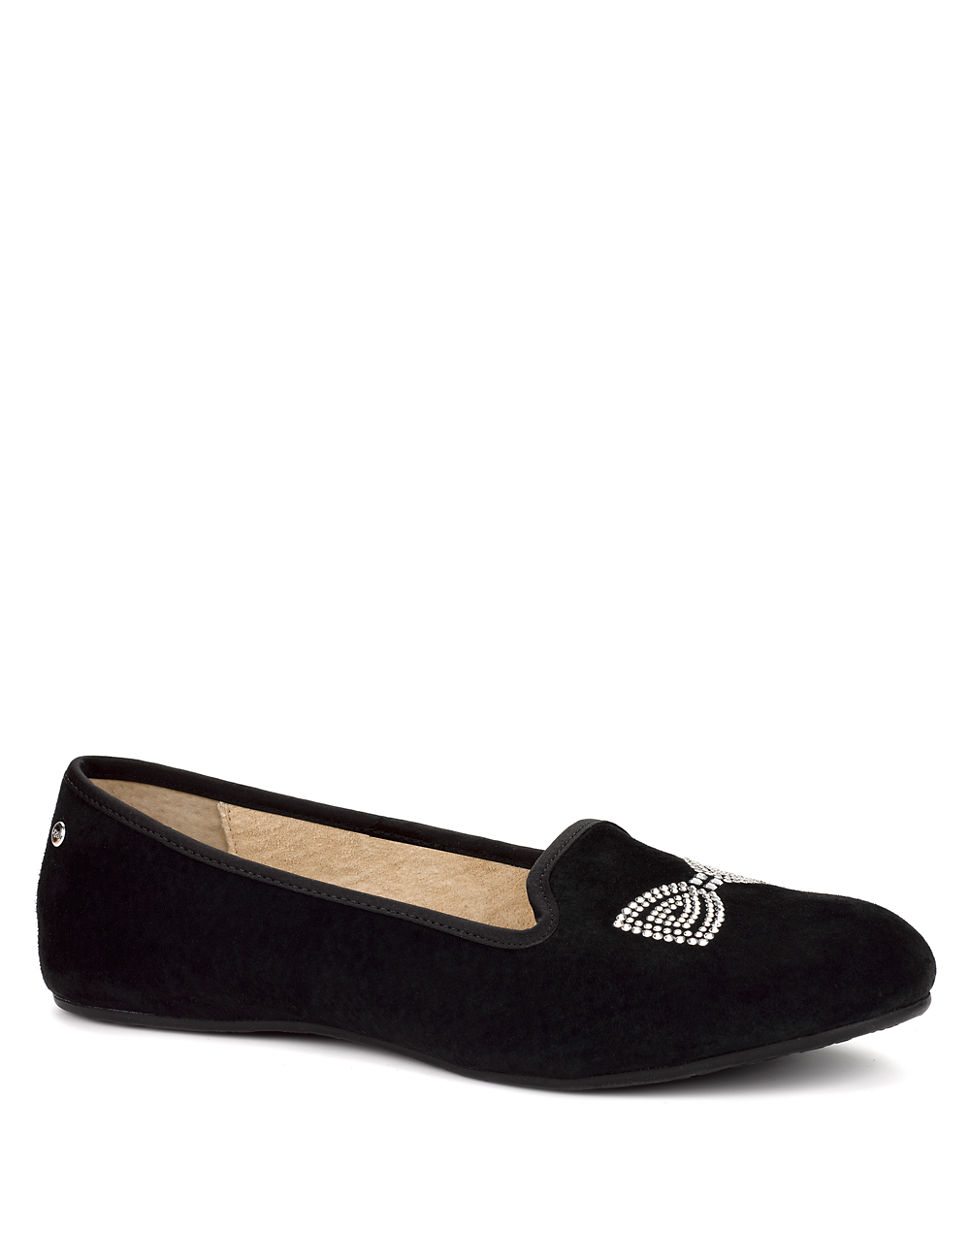 a78385eeca6 Ugg Alloway Crystal Bow Black